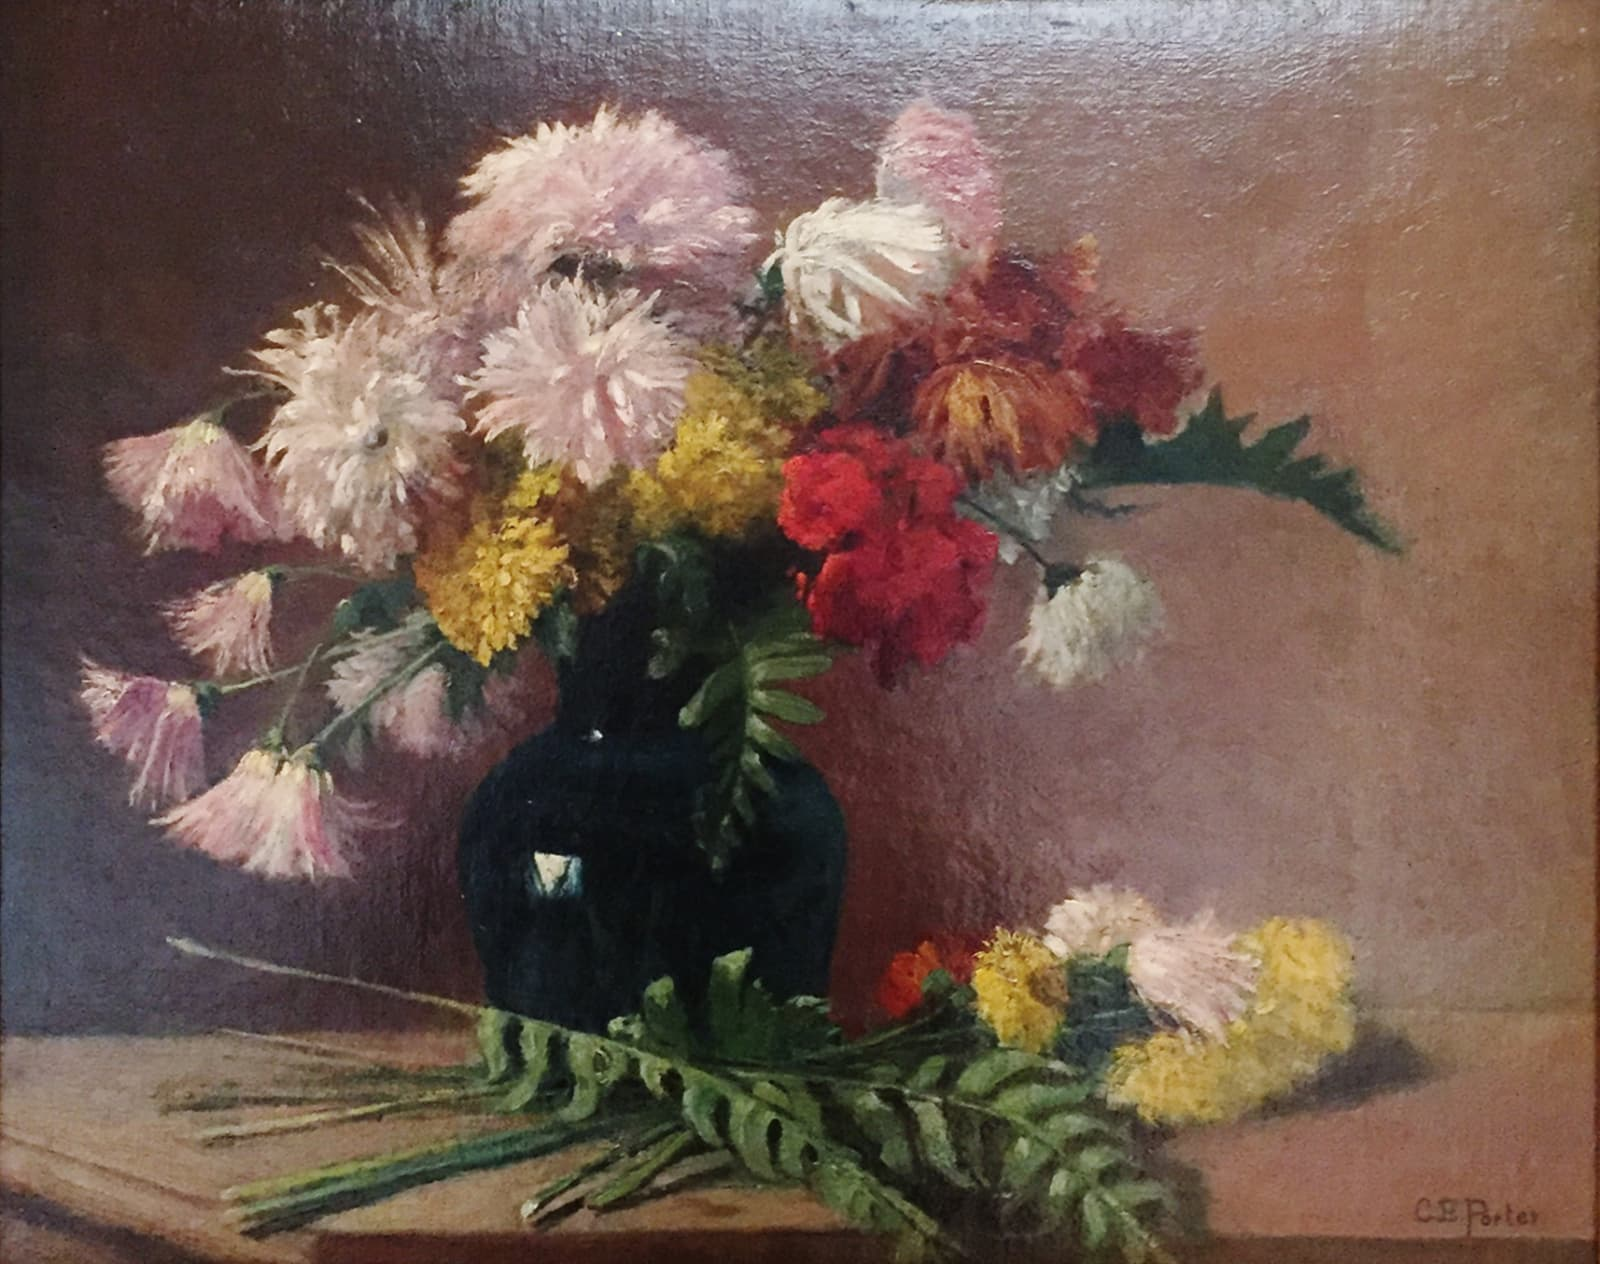 Charles Ethan Porter, Untitled (Pink, White, Yellow & Red Carnations w/Dark Blue Vase), c.1878-1885